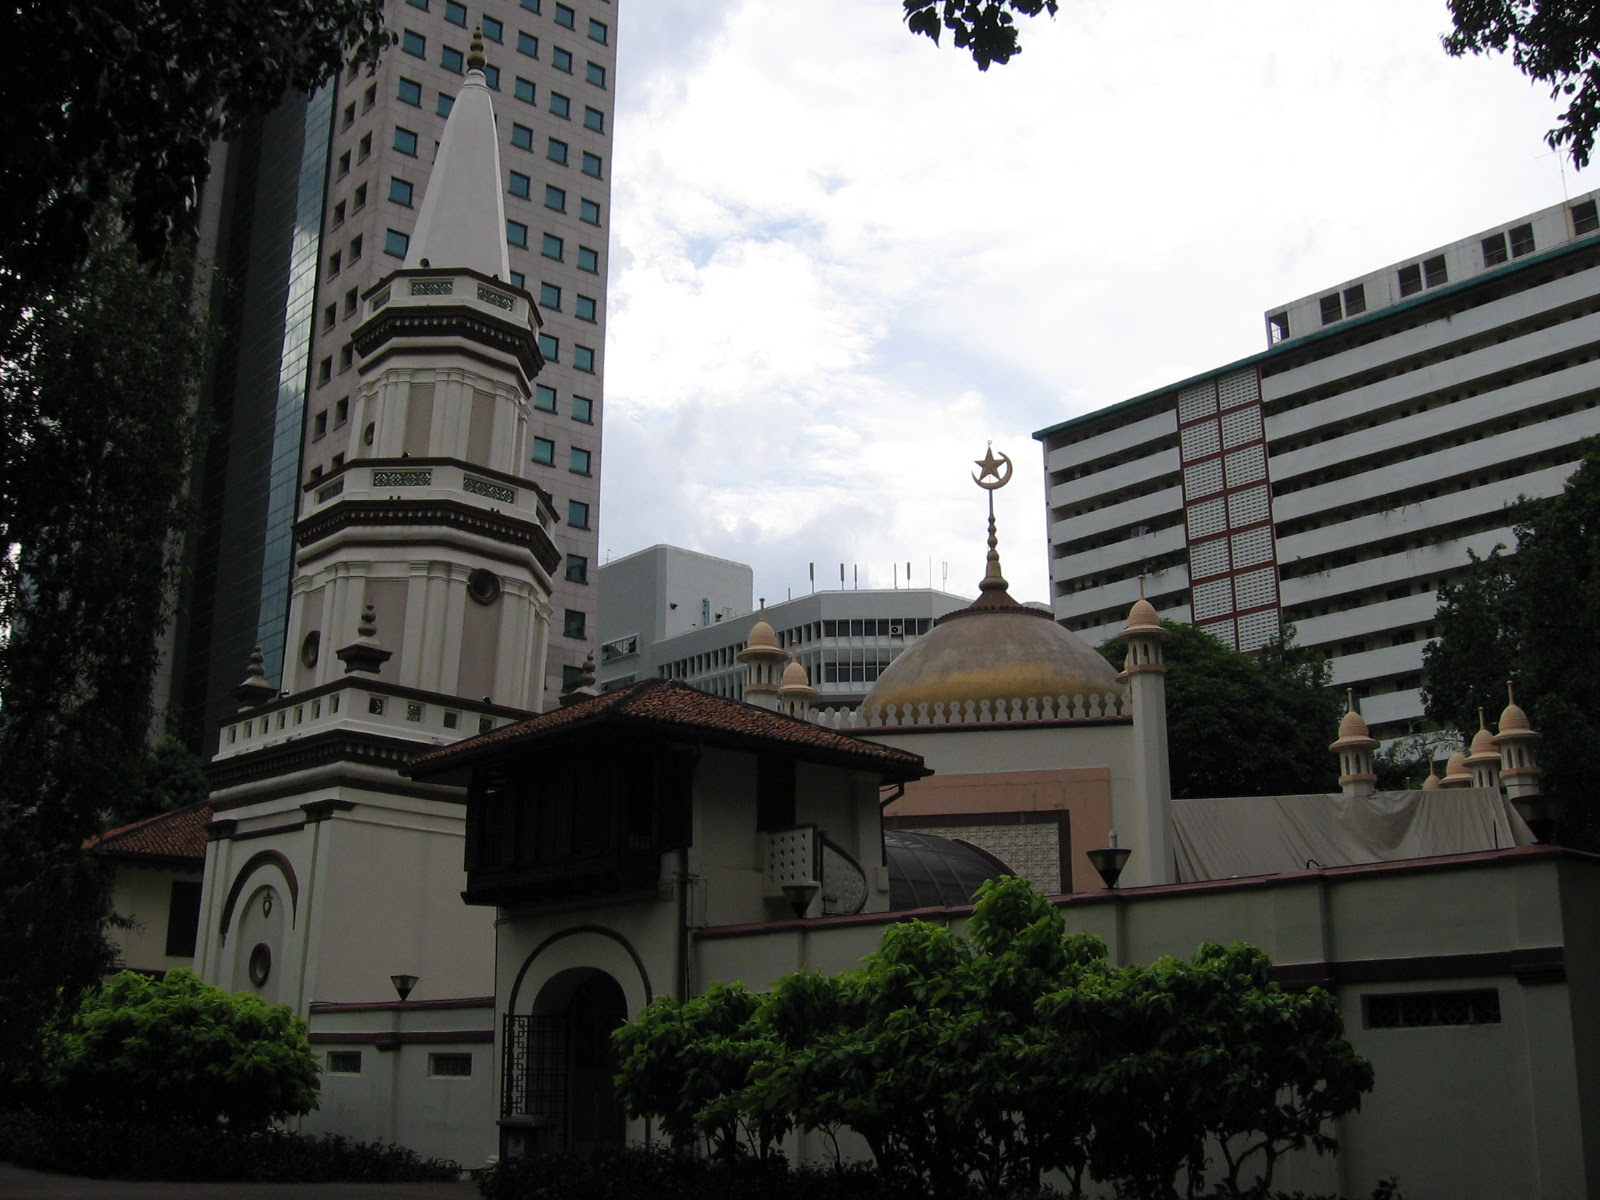 Hajjah Fatimah Mosque Singapore Map,Map of Hajjah Fatimah Mosque Singapore,Tourist Attractions in Singapore,Things to do in Singapore,Hajjah Fatimah Mosque Singapore accommodation destinations attractions hotels map reviews photos pictures